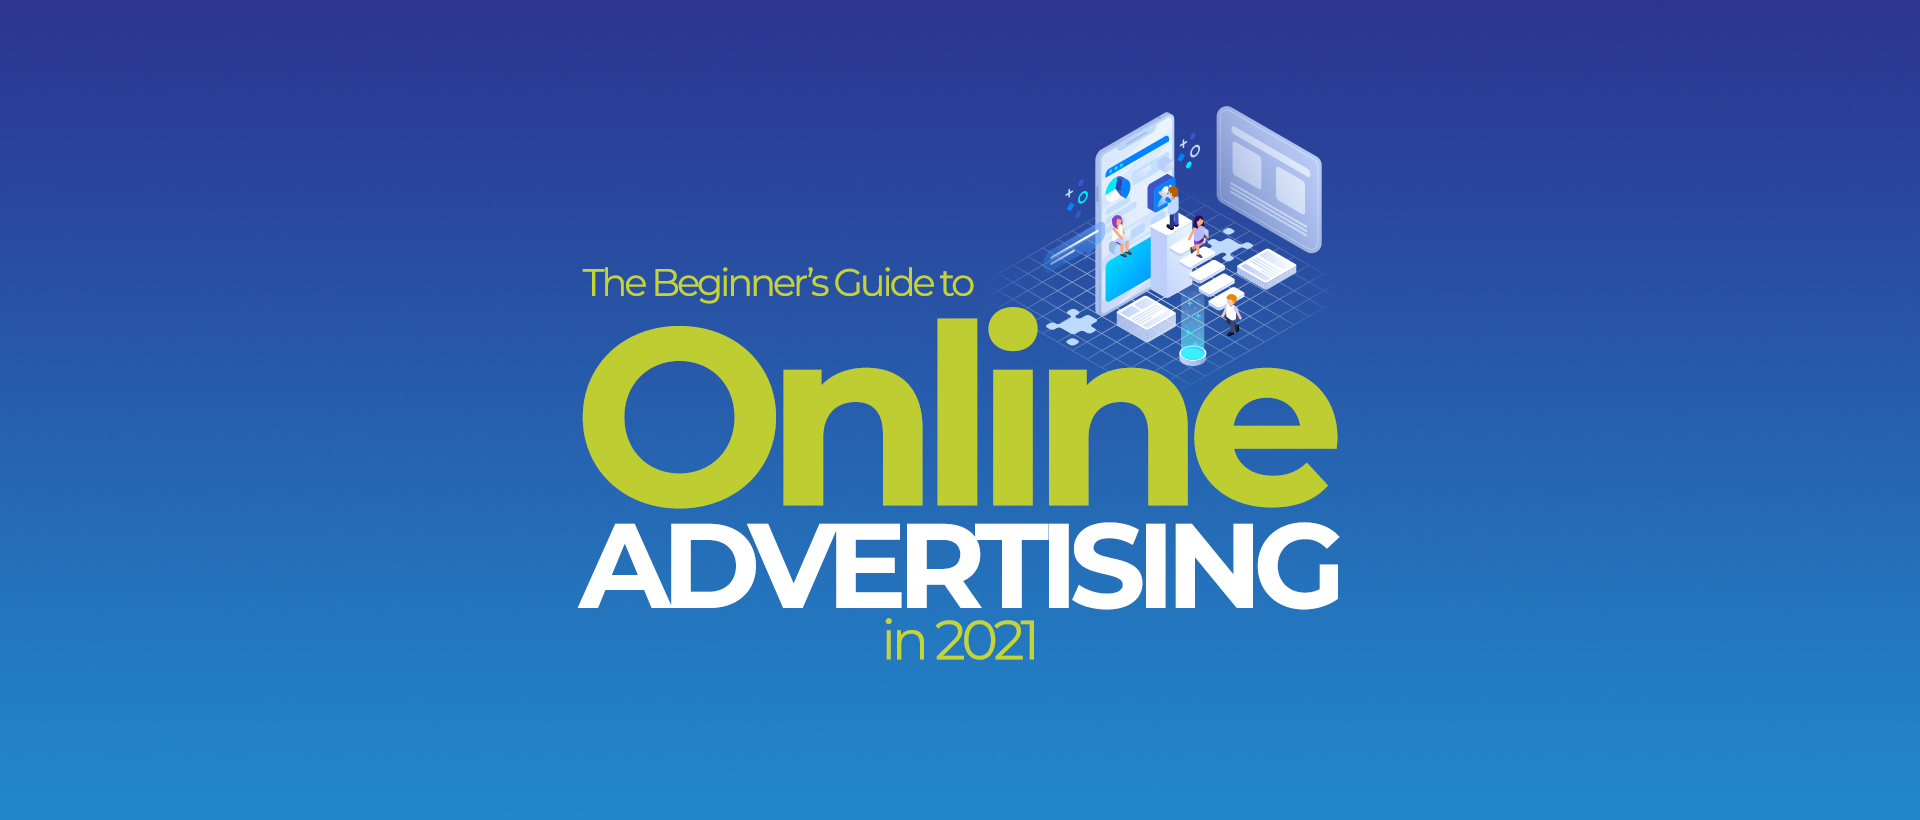 The Beginner's Guide to Online Advertising in 2021